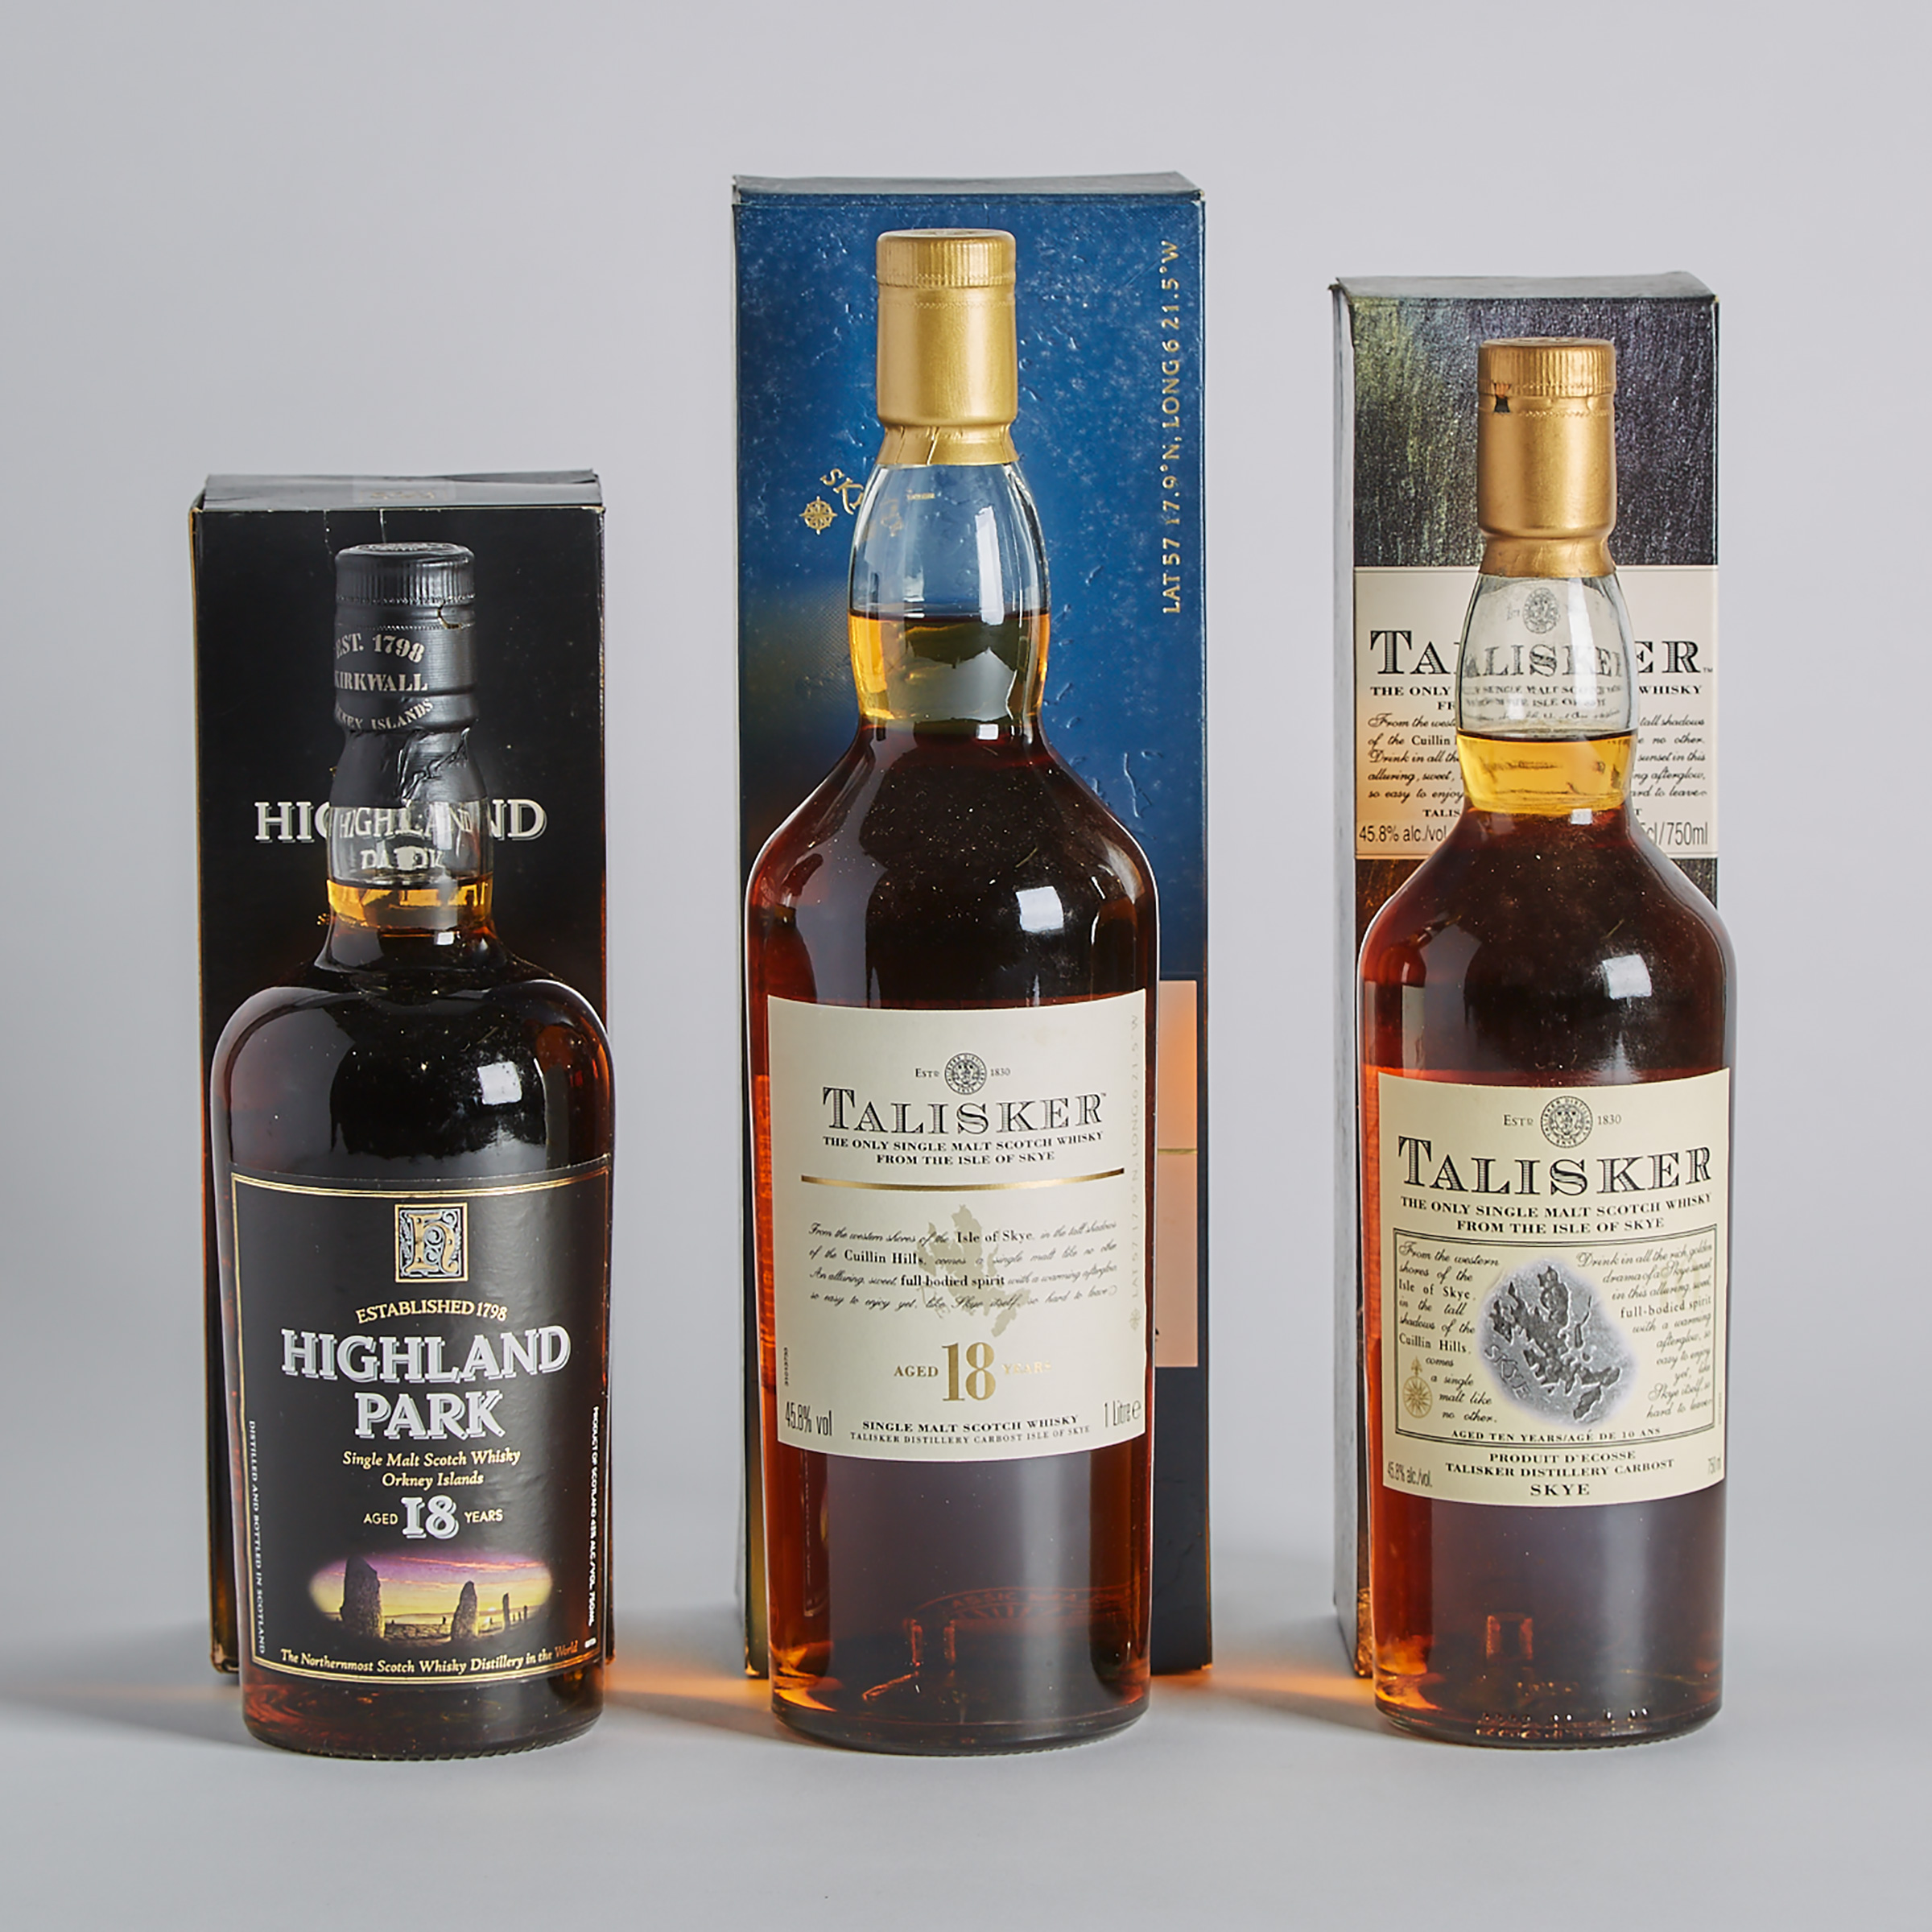 HIGHLAND PARK SINGLE MALT SCOTCH WHISKY 18 YEARS (ONE 750 ML) TALISKER SINGLE MALT SCOTCH WHISKY 10 YEARS (ONE 750 ML) TALISKER SINGLE MALT SCOTCH WHISKY 18 YEARS (ONE 1000 ML)